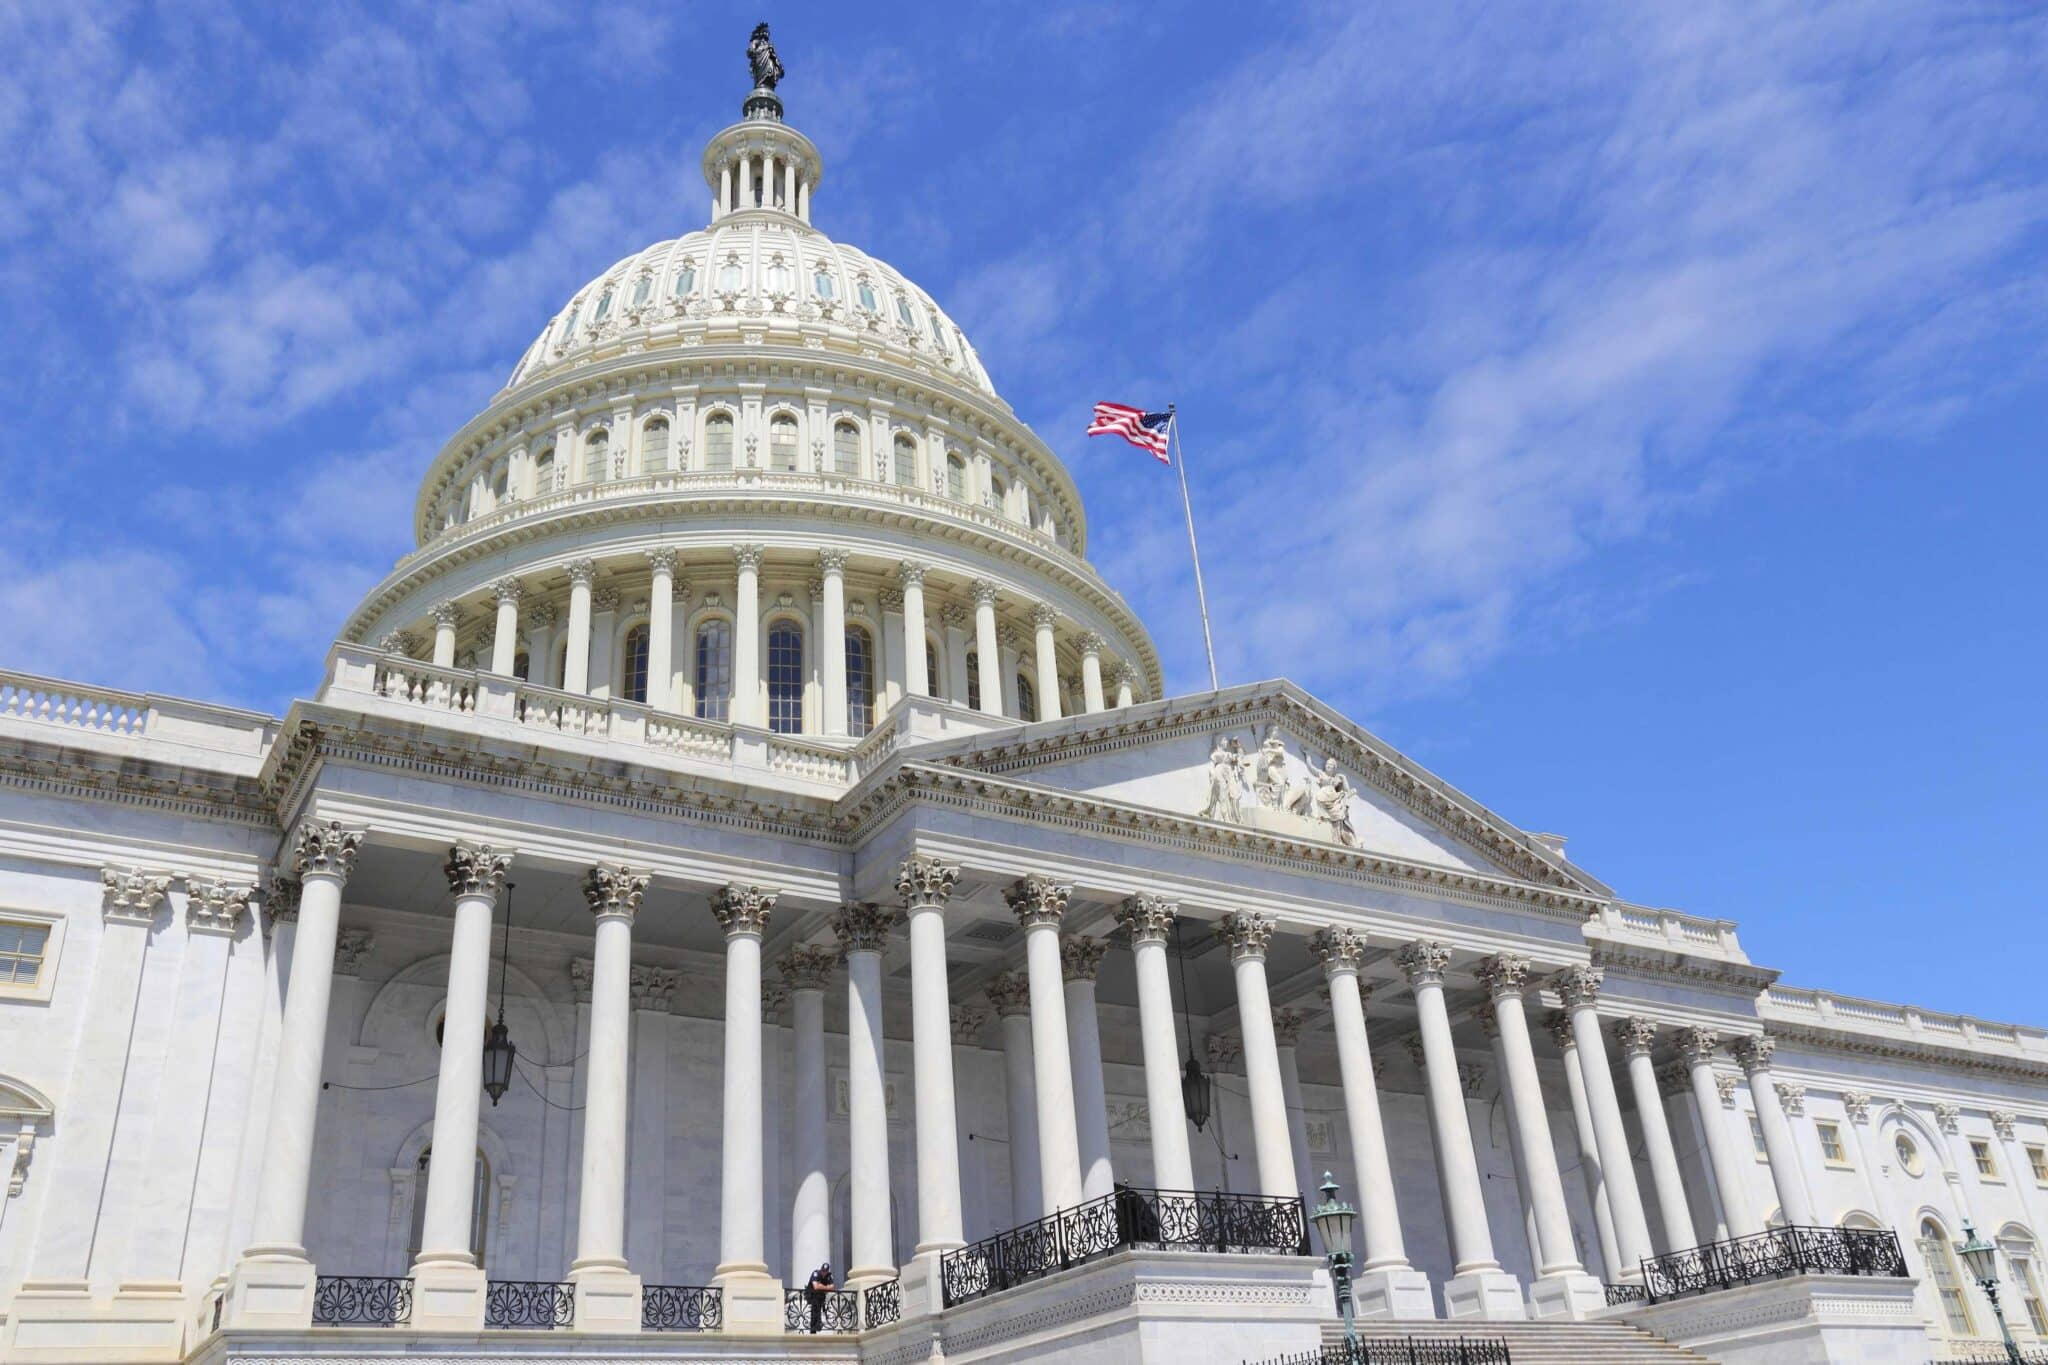 Congressional Boating Caucus was formed in 1989